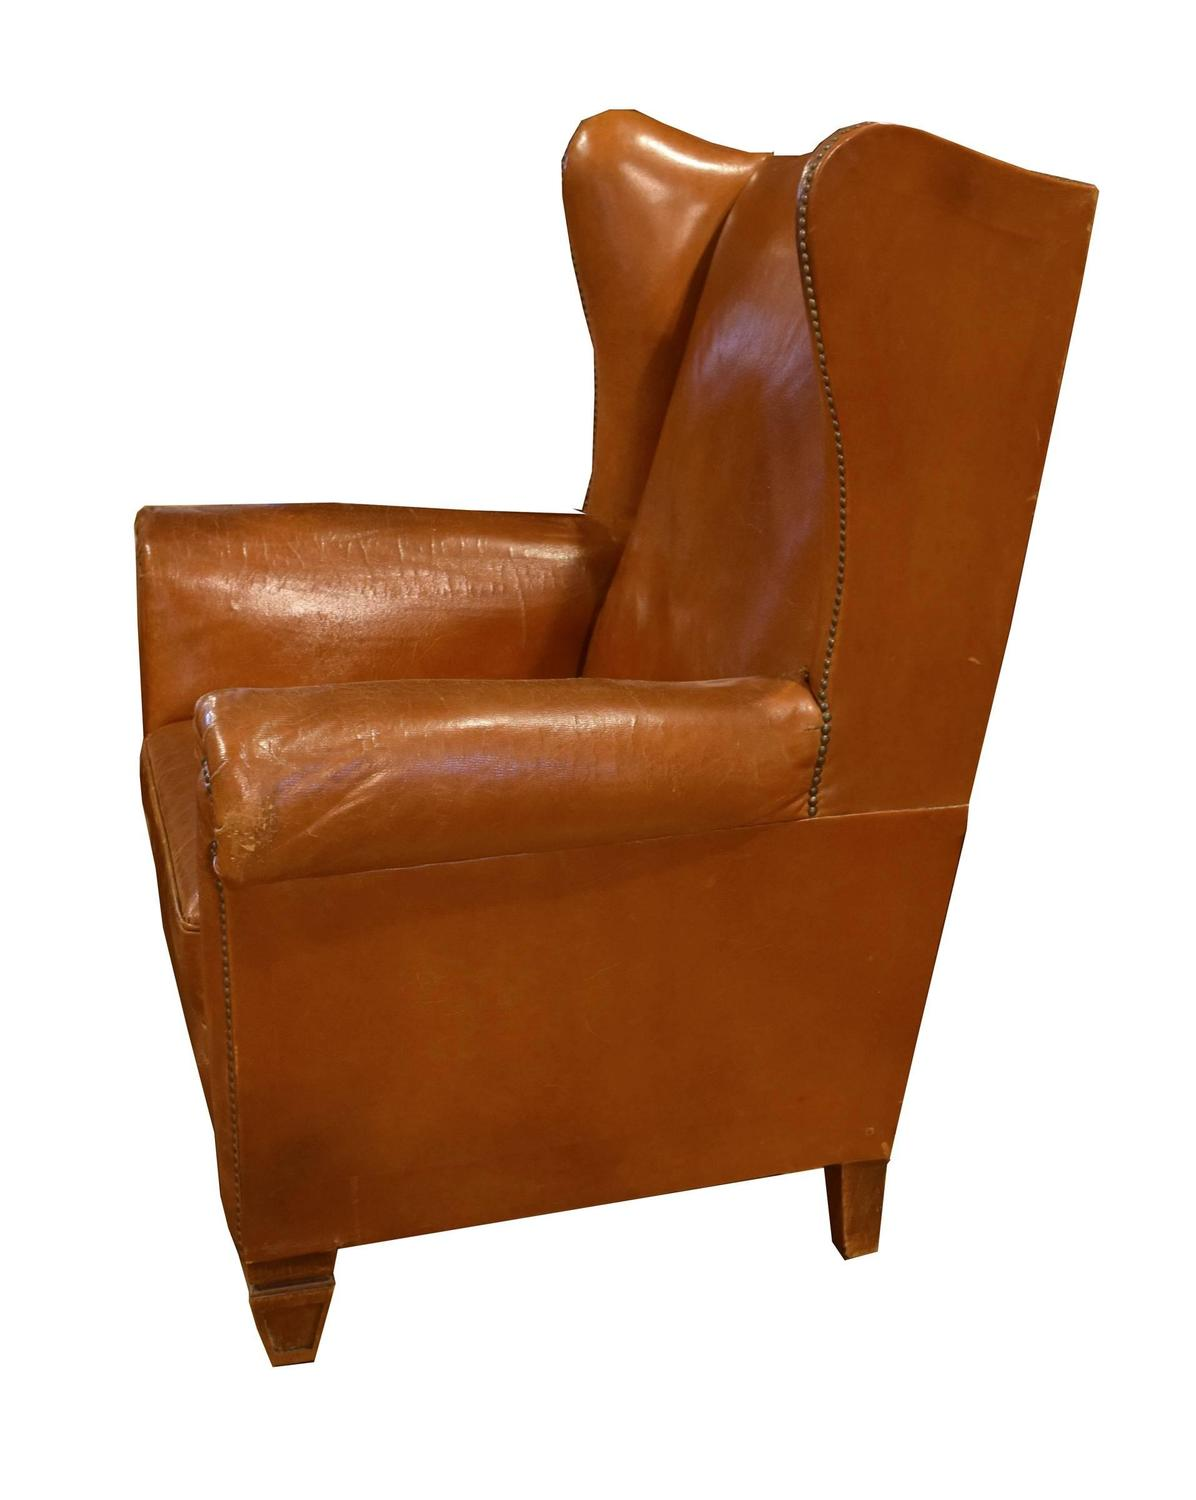 Italian Leather Wingback Chair For Sale at 1stdibs